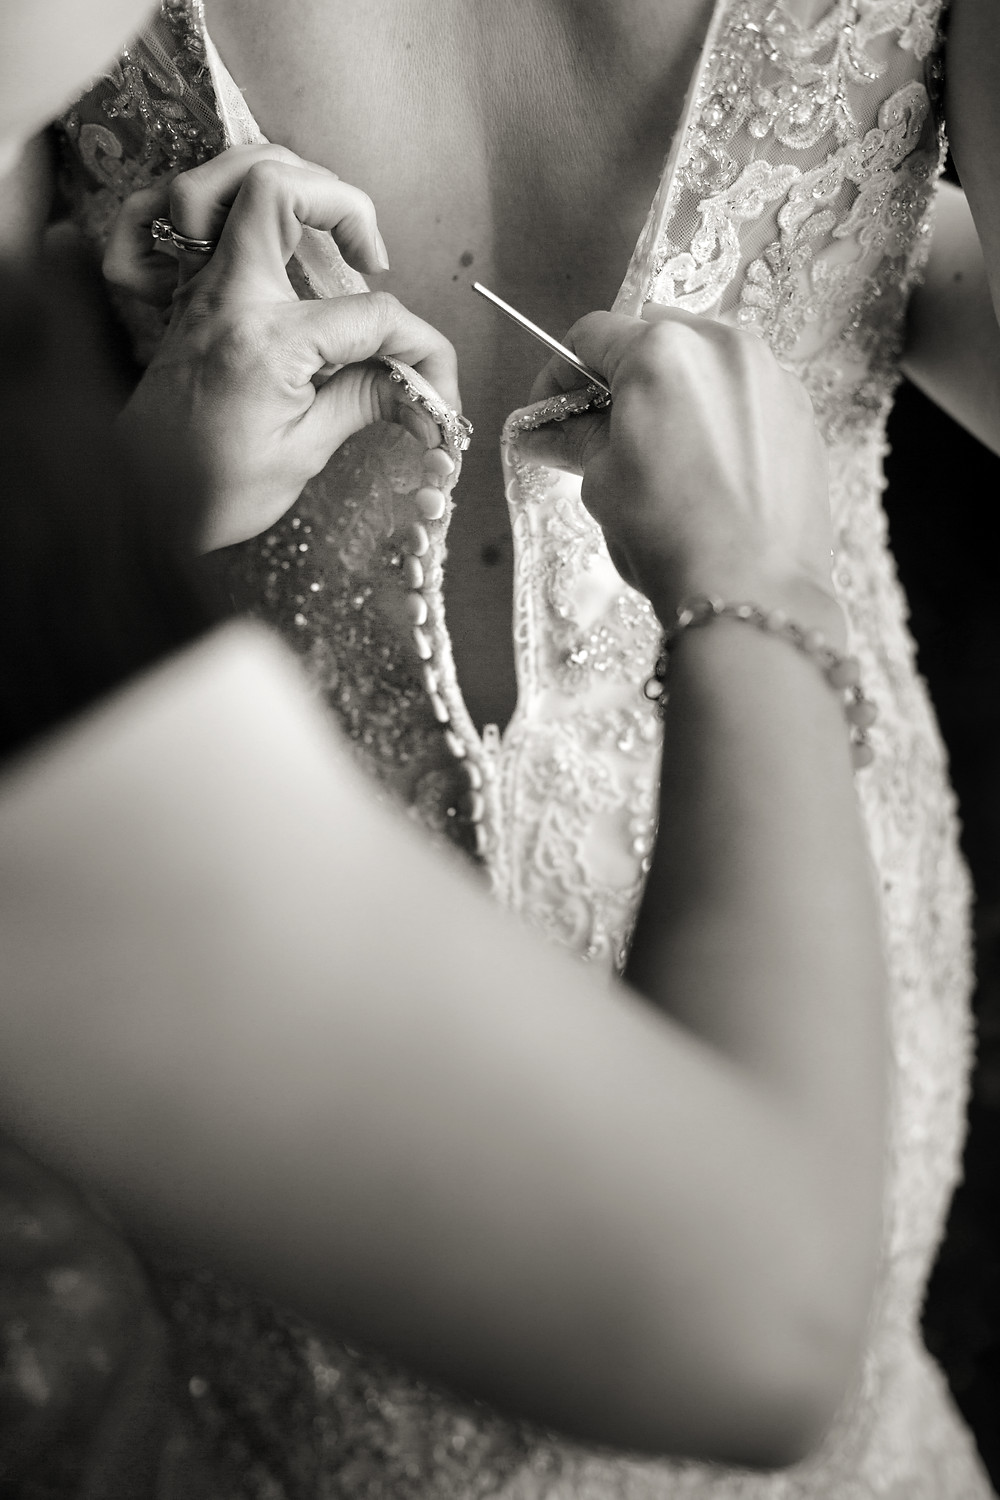 Rachel from MasterPiece Weddings buttoning up a bridal gown for a bride on her wedding day.